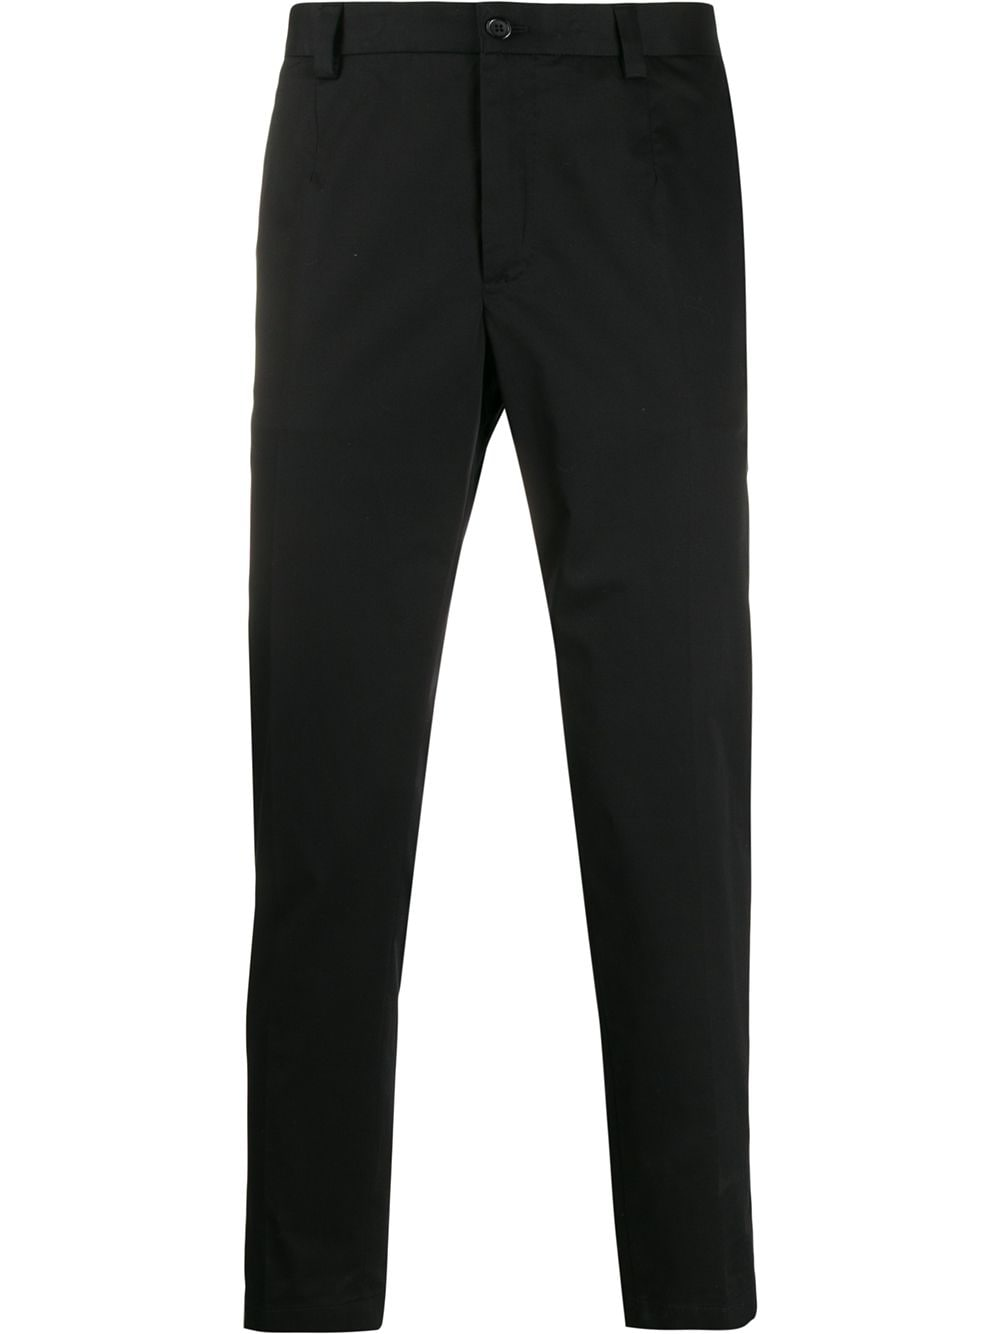 Dolce & Gabbana straight leg tailored trousers - Black von Dolce & Gabbana